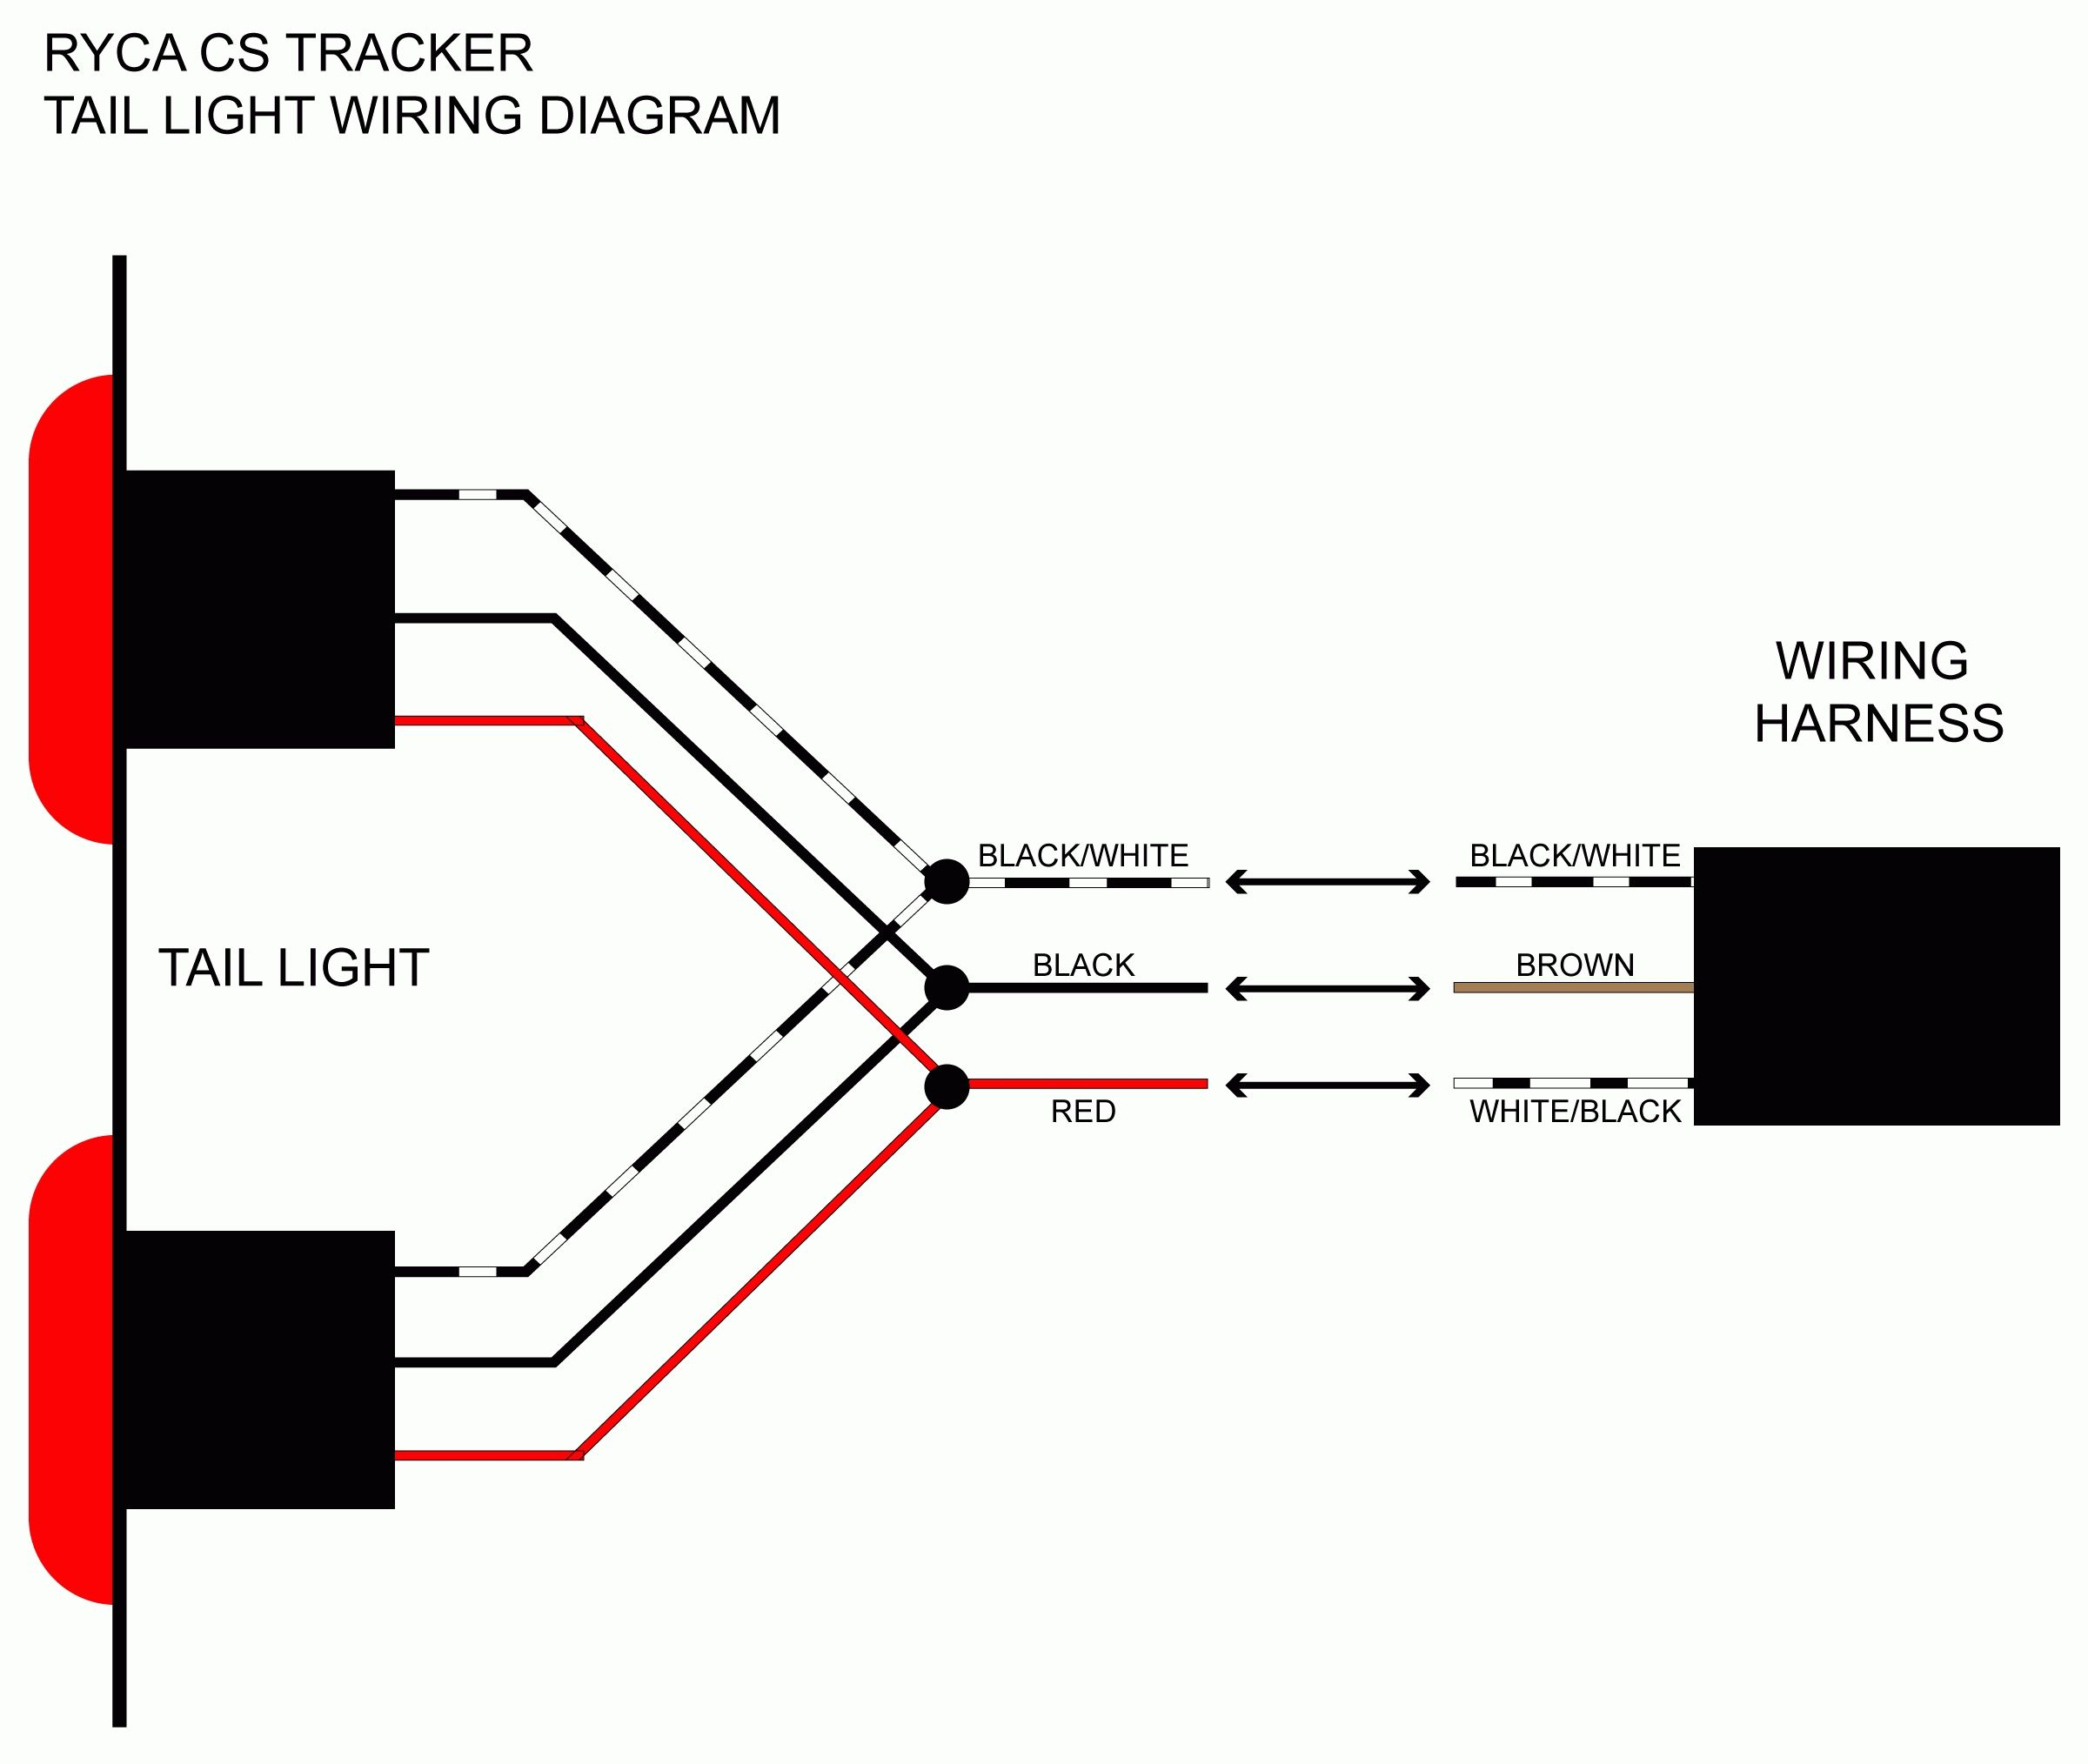 medium resolution of 3 wire led light wiring diagram wiring diagram world 3 wire led strobe light wiring diagram led light wire diagram 3